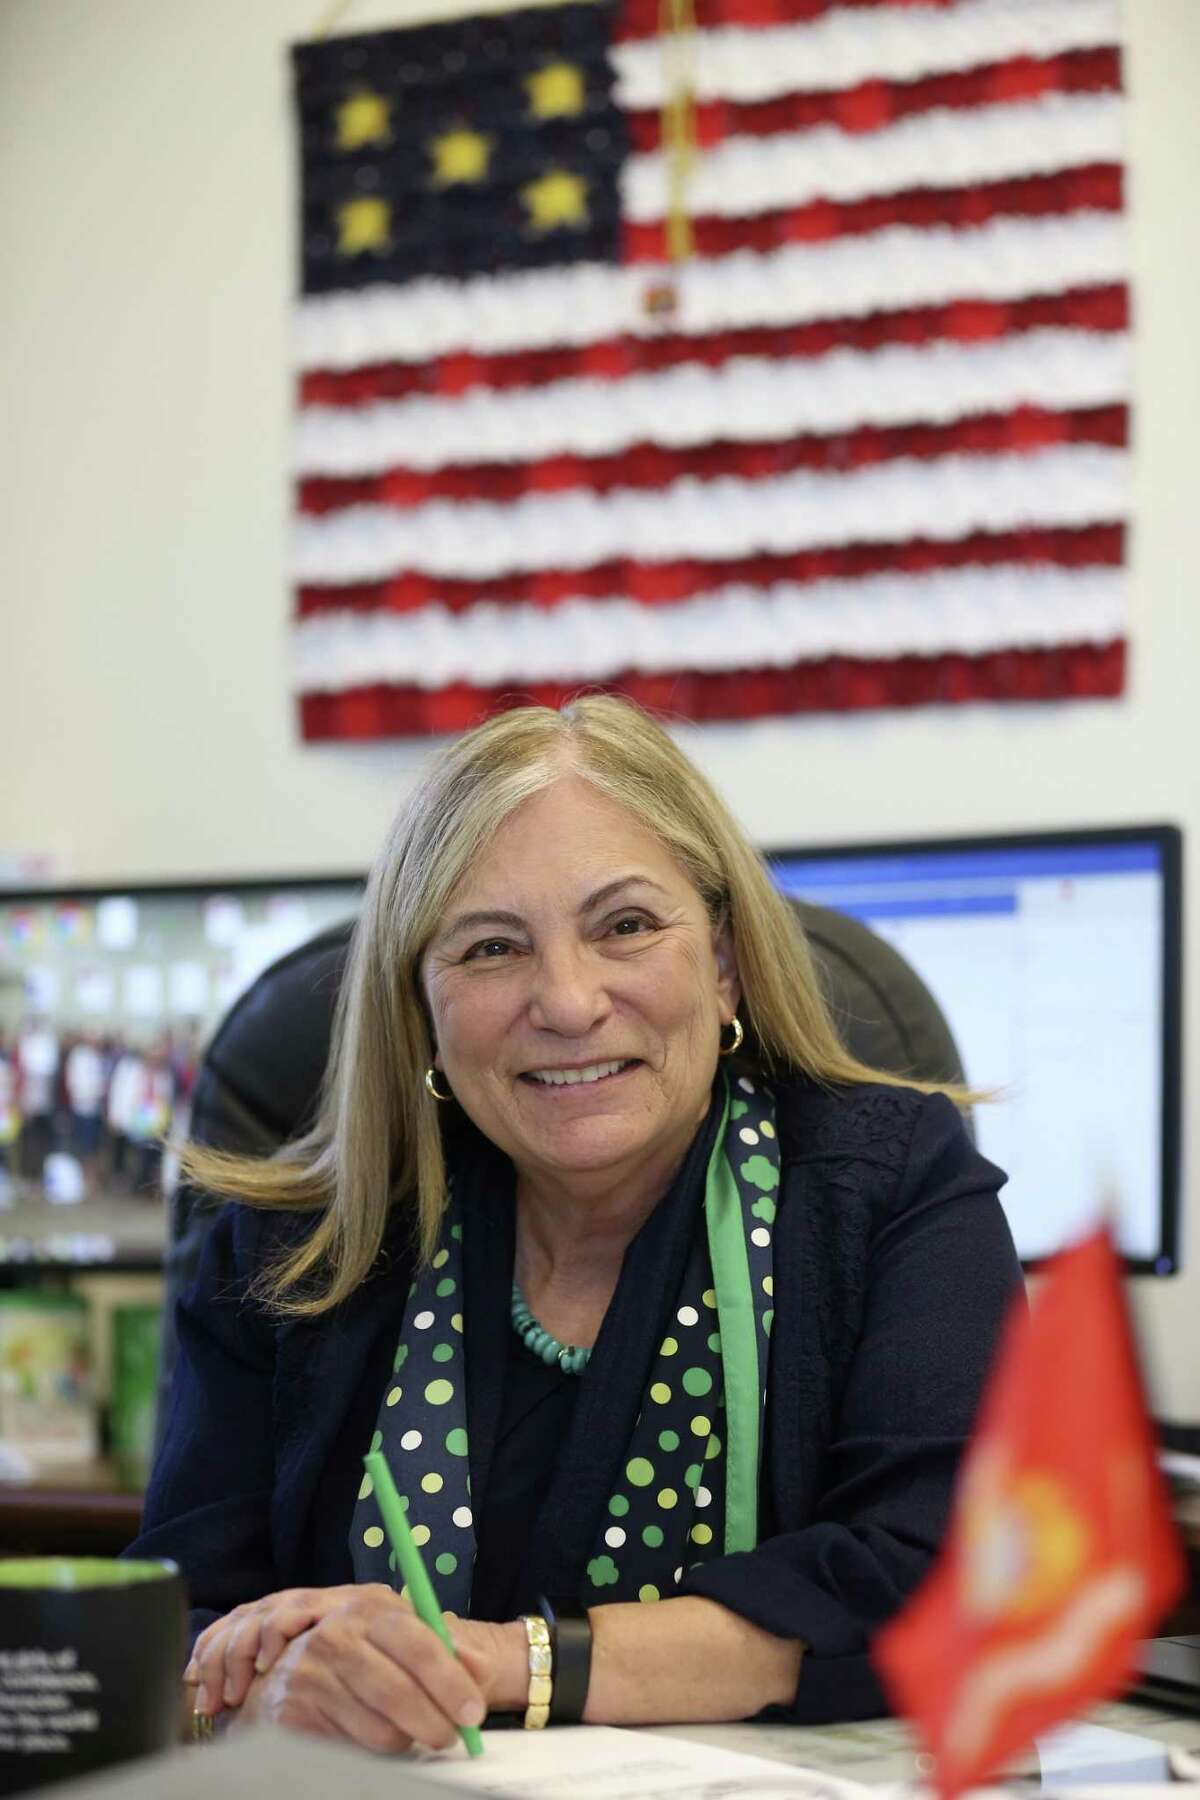 Retired U.S. Marine Maj. Gen. Angie Salinas works at her office at the Girl Scouts of Southwest Texas, Dec. 20. Salinas, was born in Alice, Texas, and was raised in California.